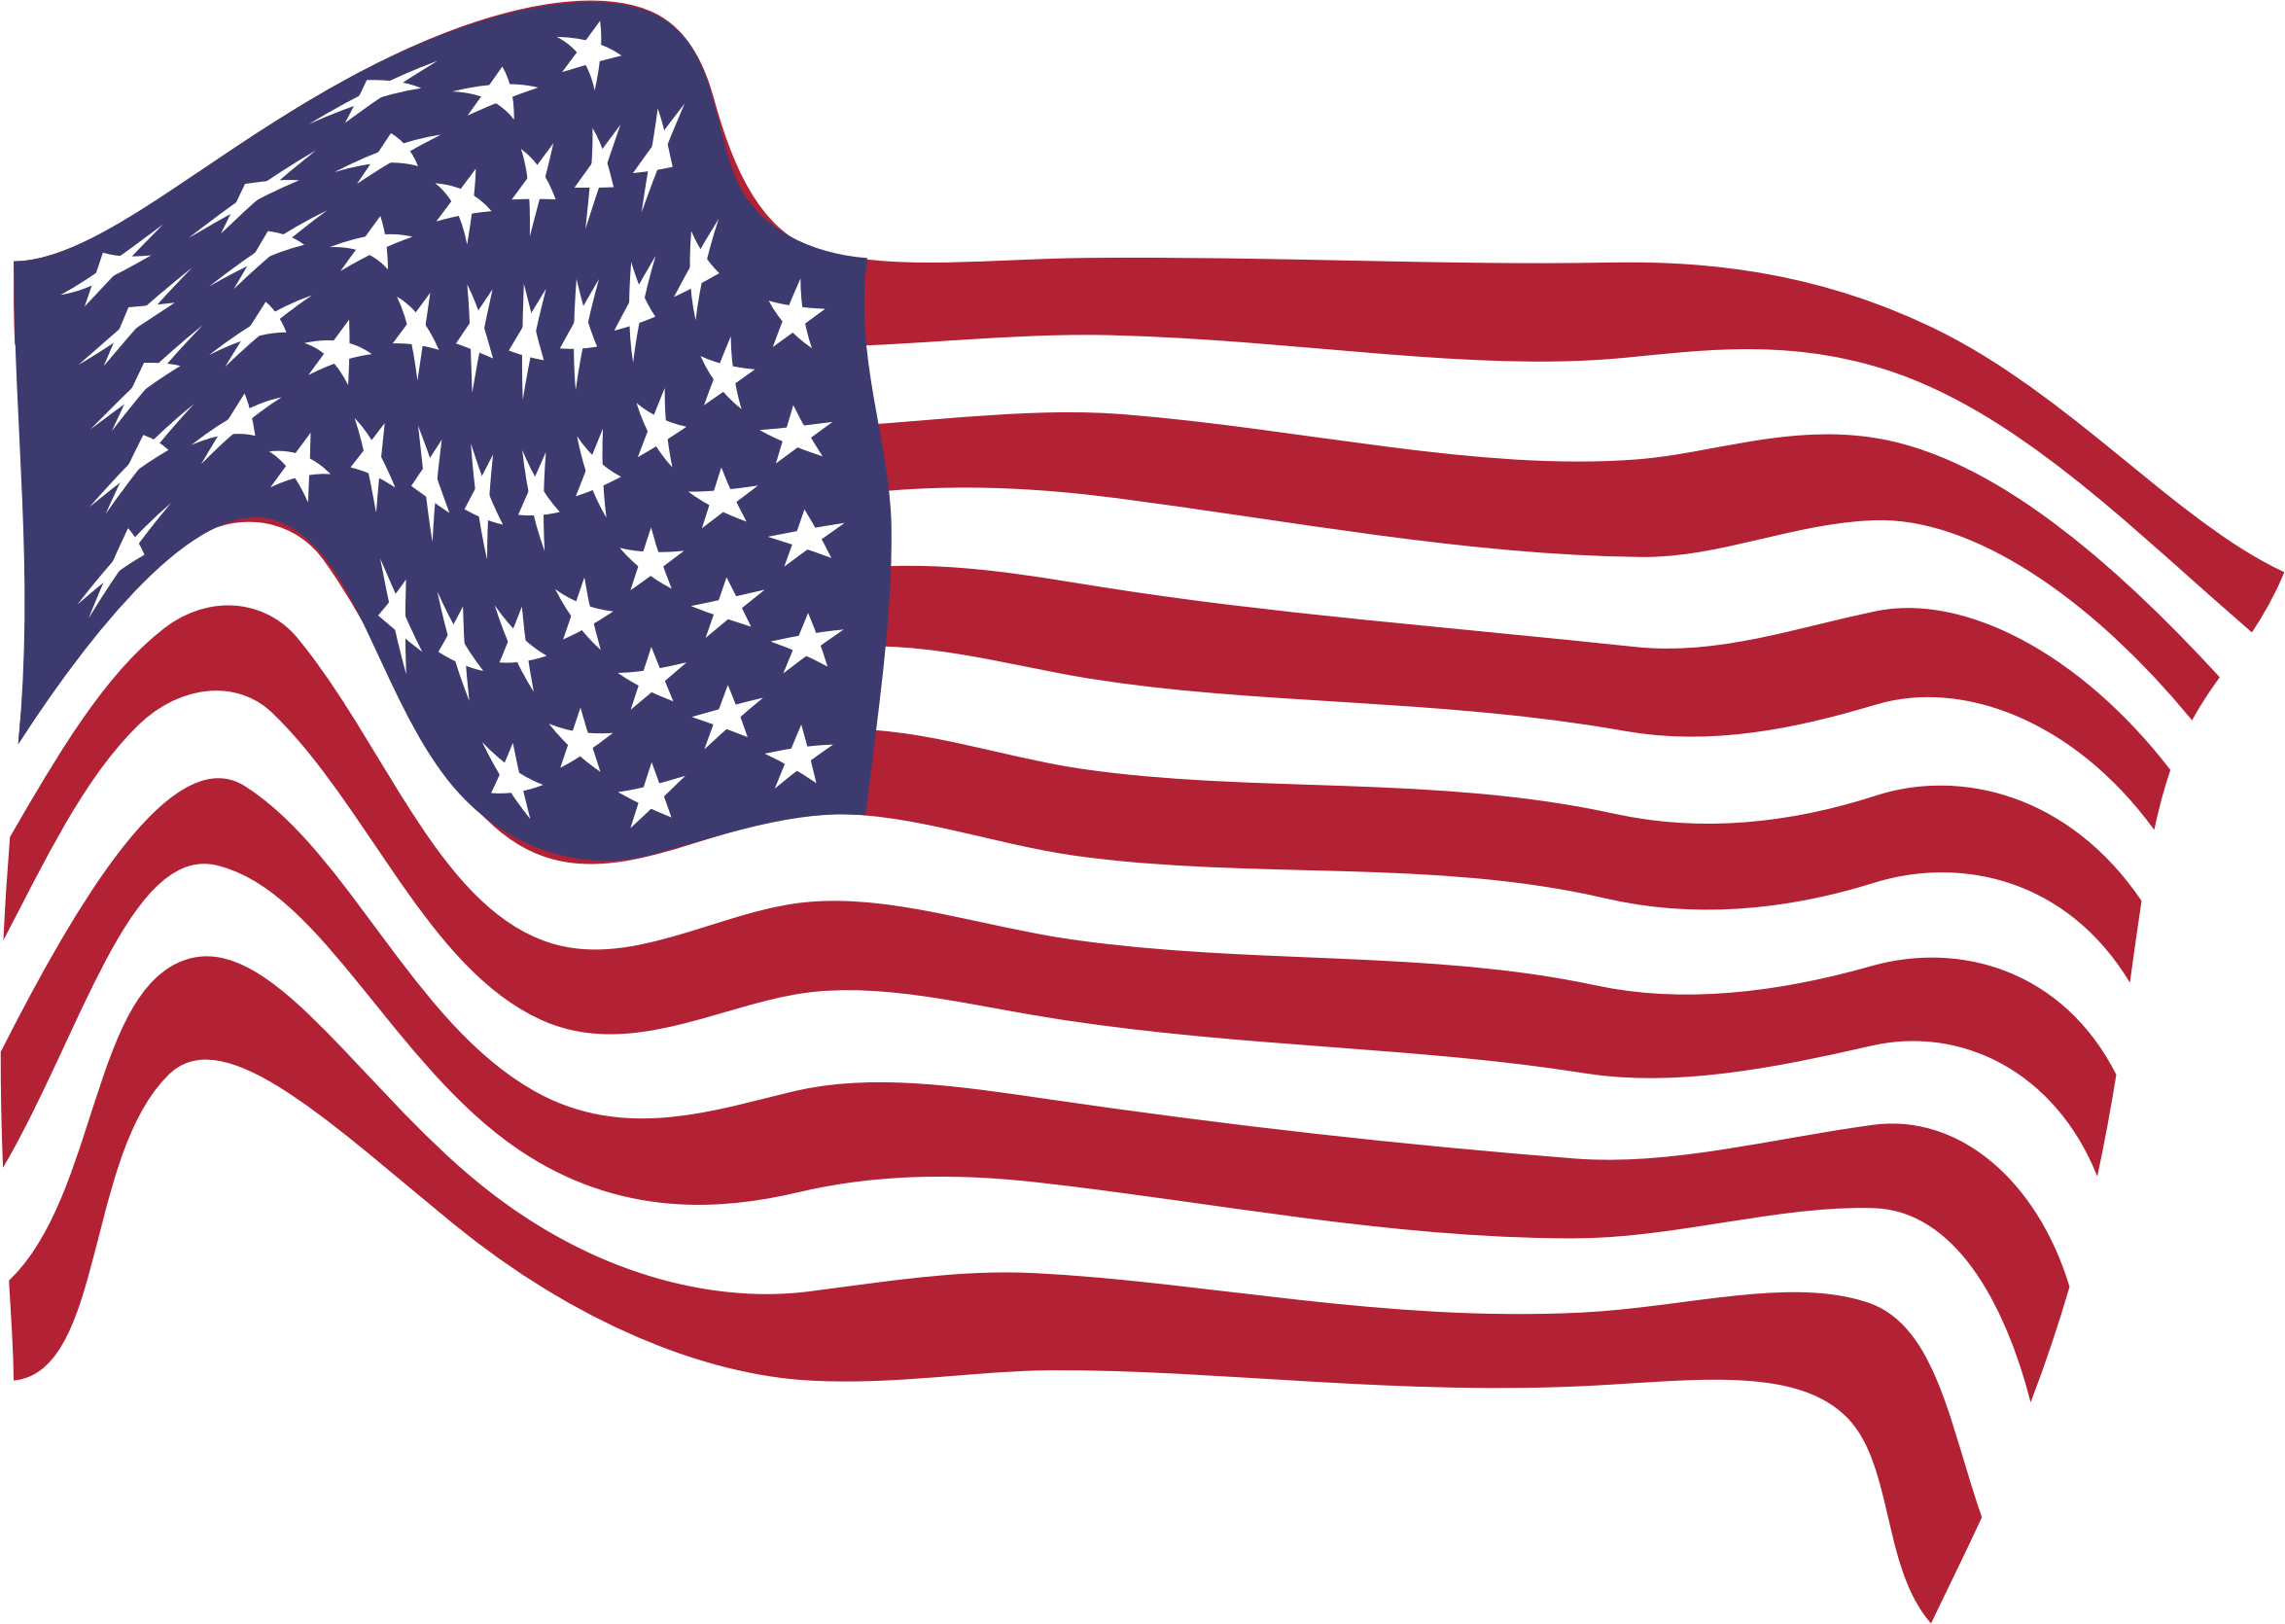 American Flag Png - ClipArt Best